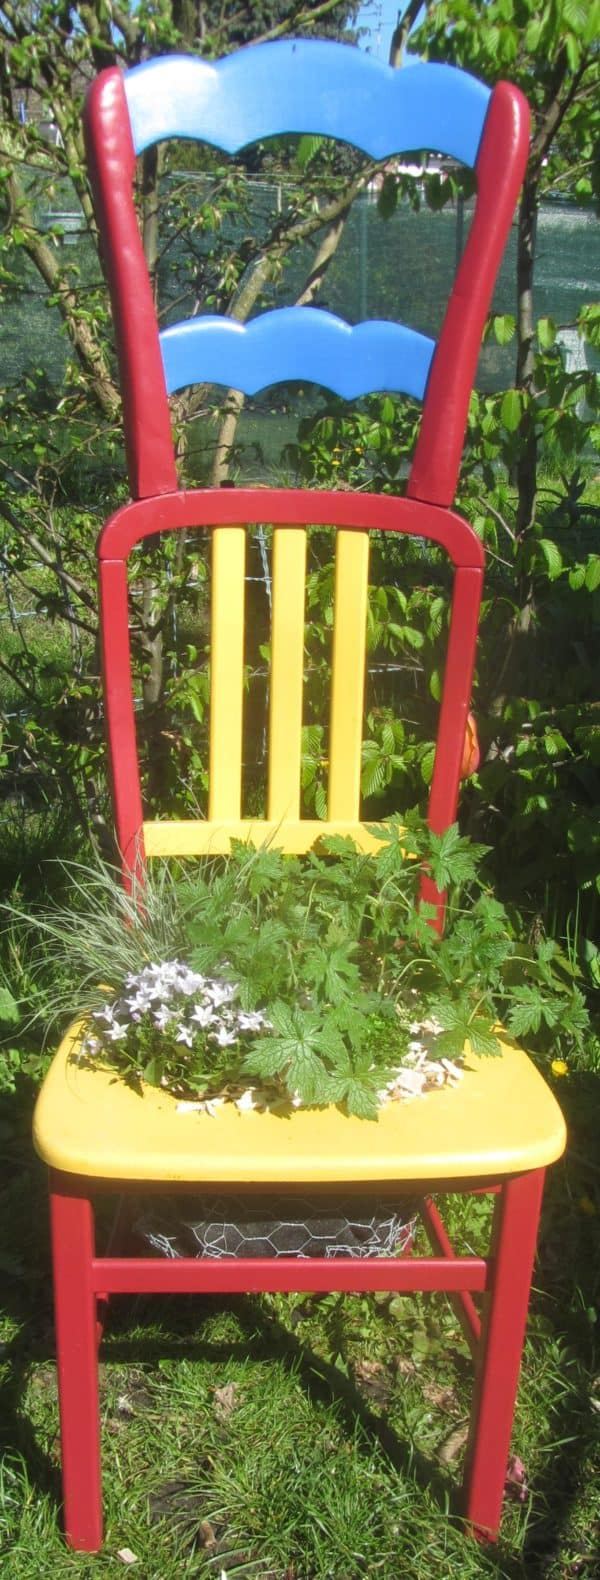 Chaise Végétalisée / Planter Chairs Garden Ideas Recycled Furniture